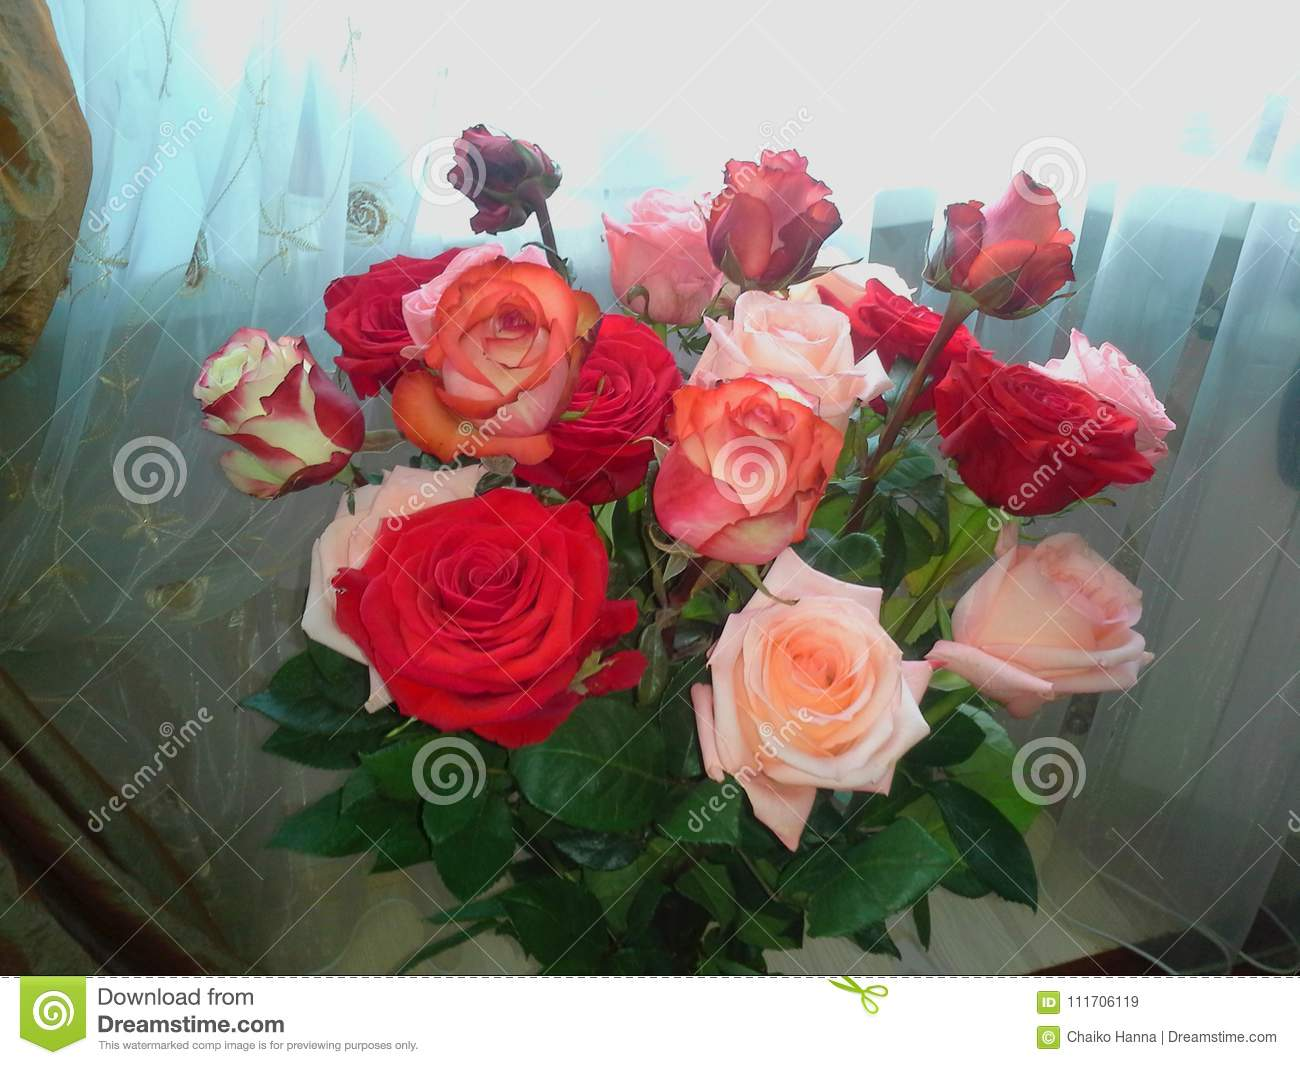 A Beautiful Bouquet With Pink Red Roses Bouquet Of Roses Flowers